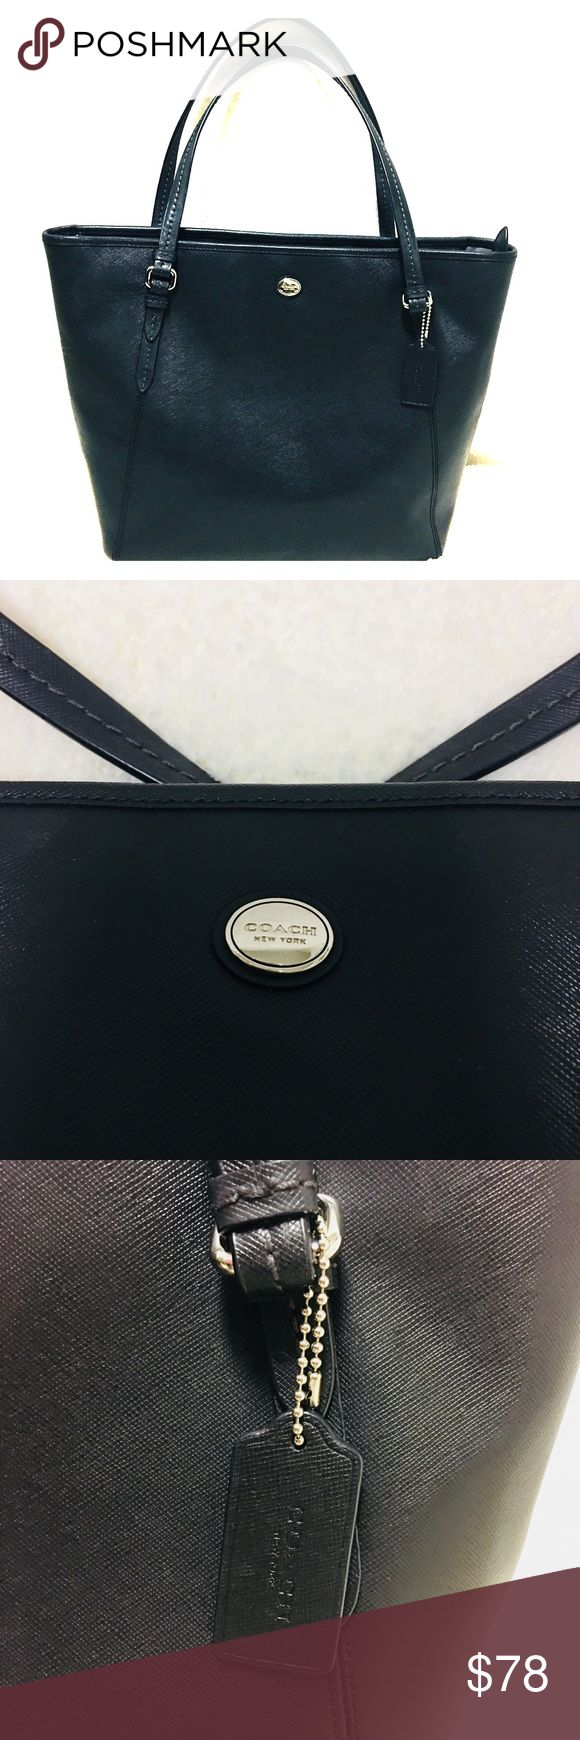 💥Lowered Price!💥Black Coach Tote Bag In Good Condition. 100% Authentic! Lovingly Used! Black Coach Handbag. An easy to go bag for school or work. There are minor signs of usage but still has a long life. Please see pictures. Bundle more in my closet to get instant discount plus a private discount. Also willing to negotiate with a reasonable offer. Coach Bags Shoulder Bags